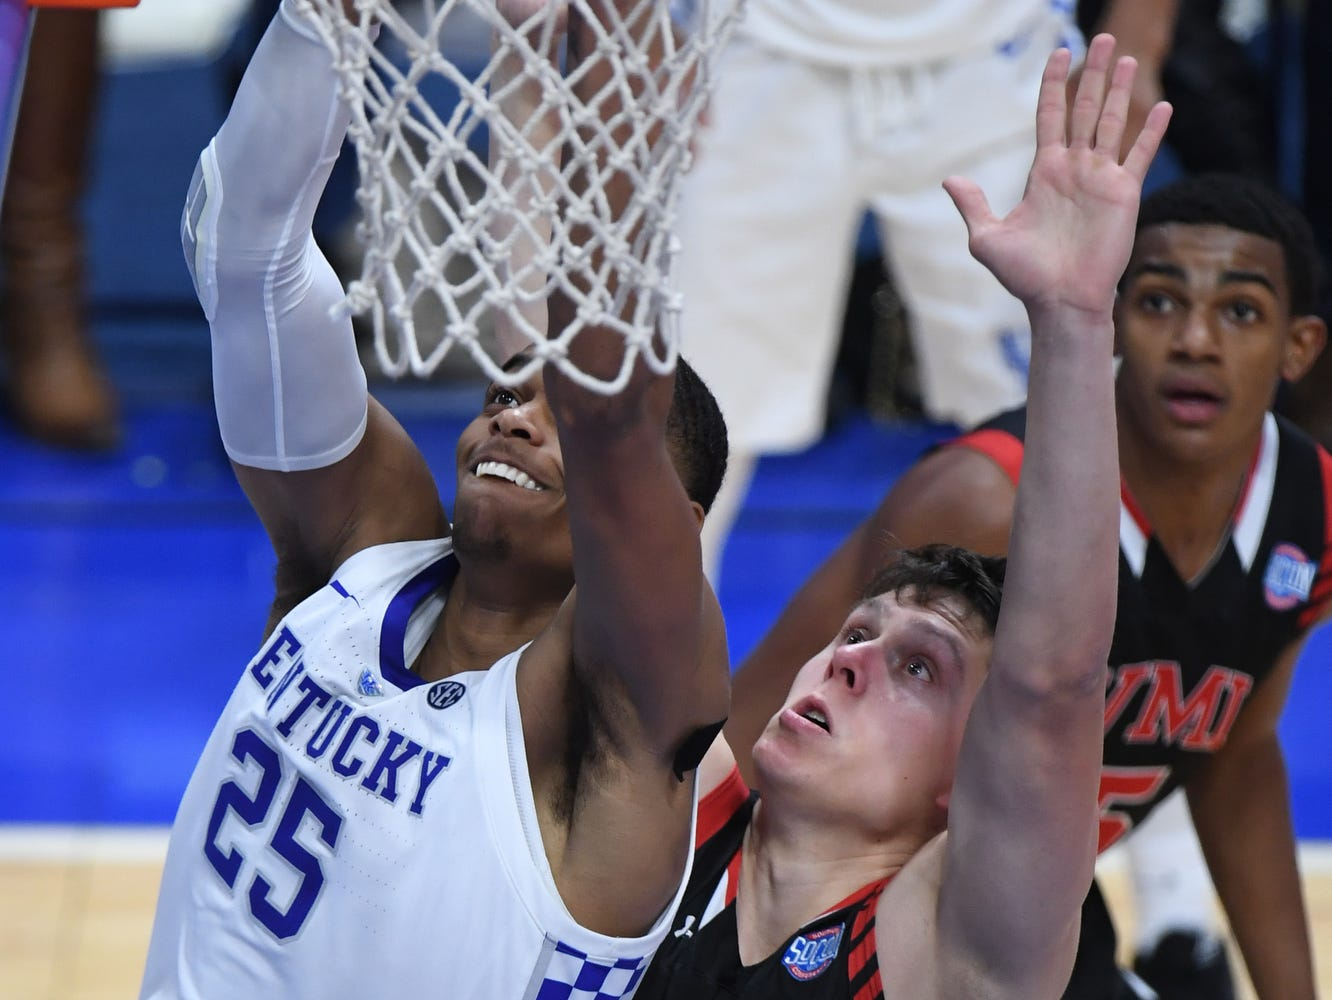 UK F PJ Washington goes up with the ball during the University of Kentucky mens basketball game against VMI at Rupp Arena in Lexington, Kentucky on Sunday, November 18, 2018.